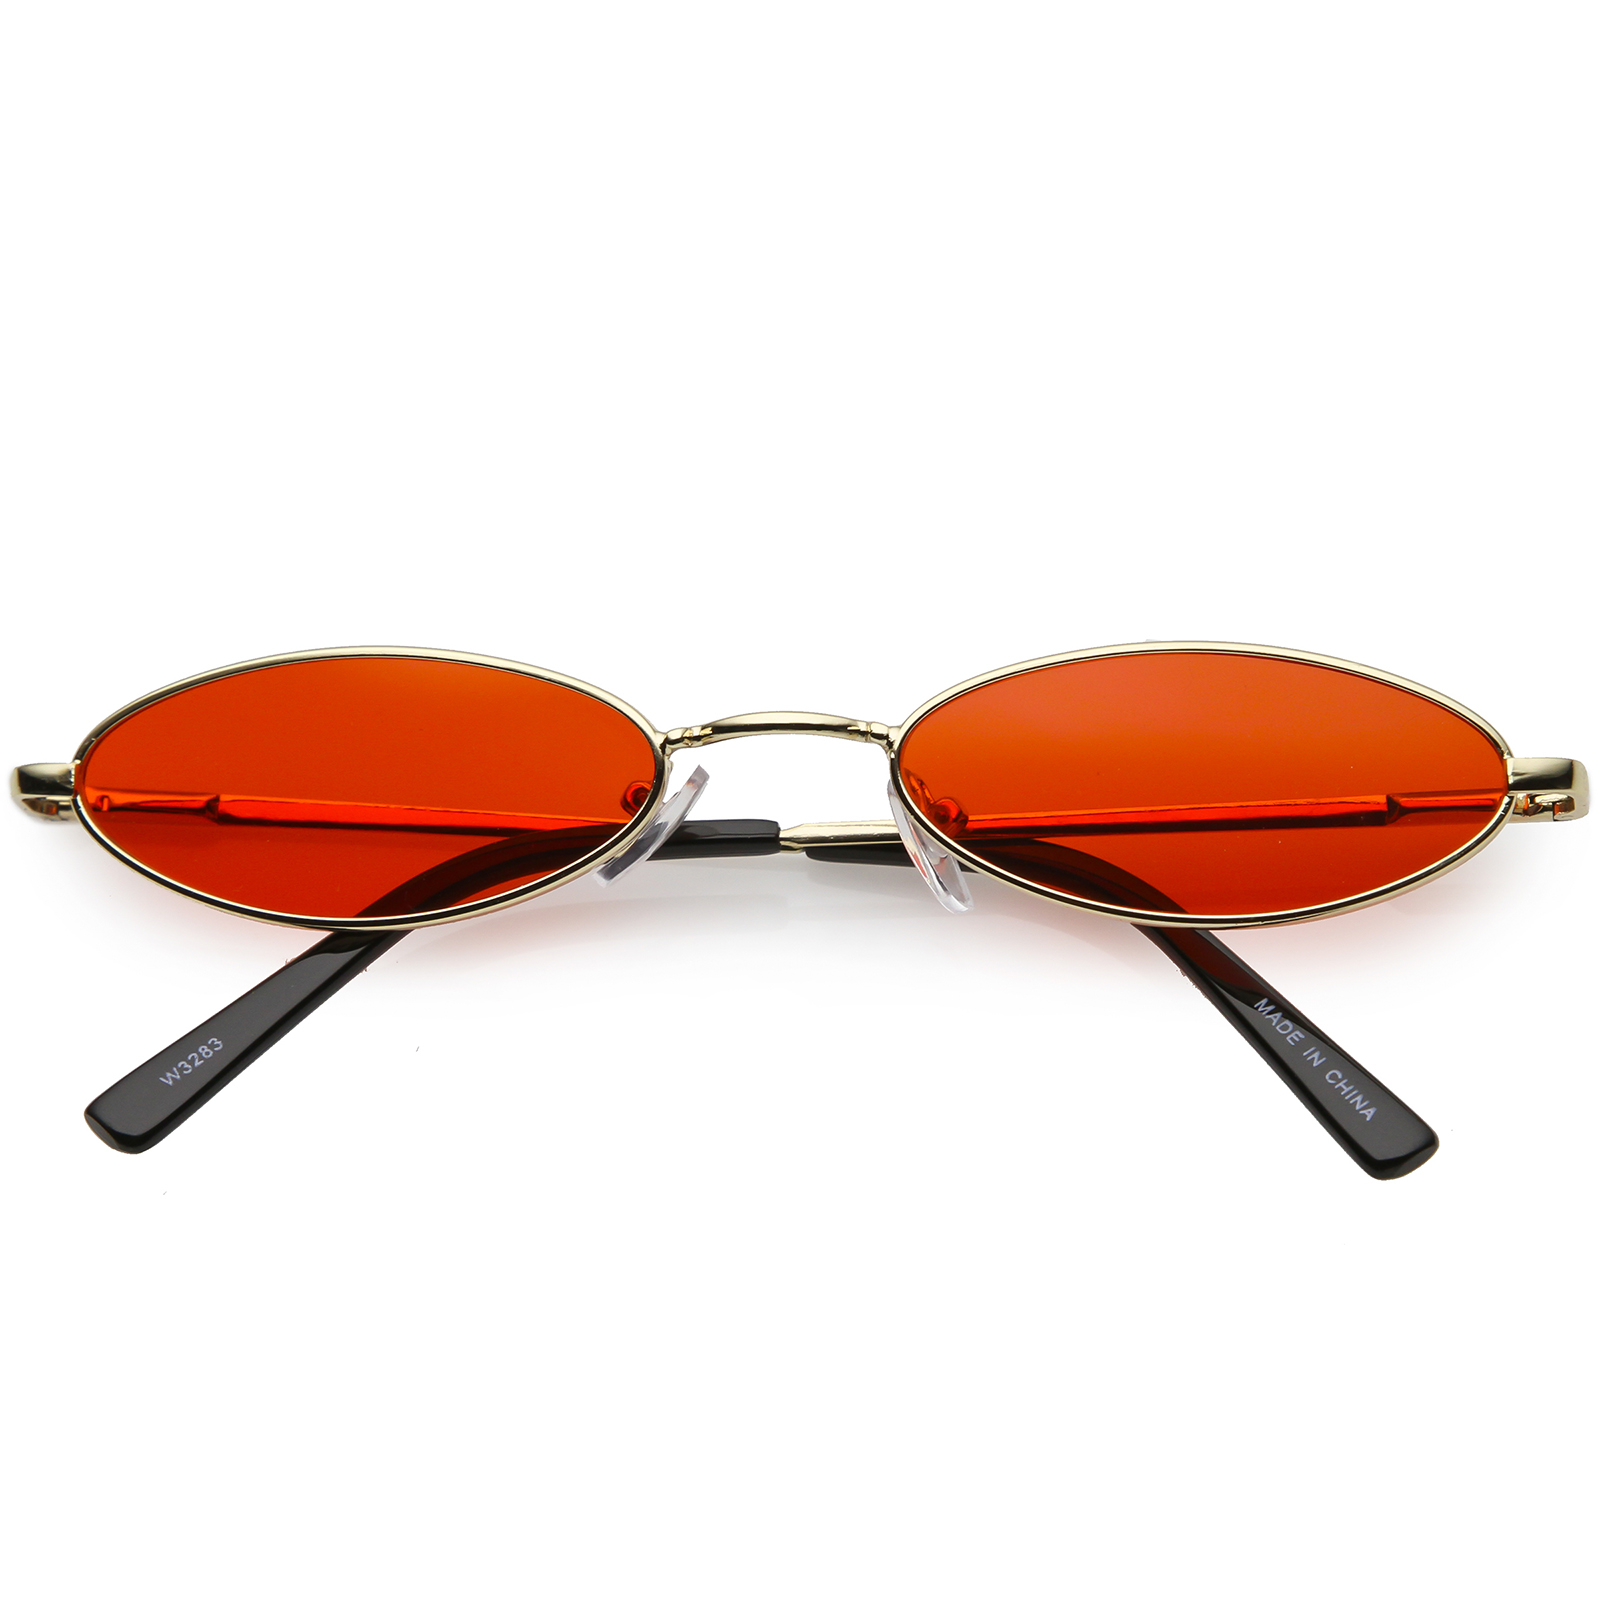 Retro Small Oval Sunglasses Slim Arms Color Tinted Flat Lens 51mm (Gold / Red)